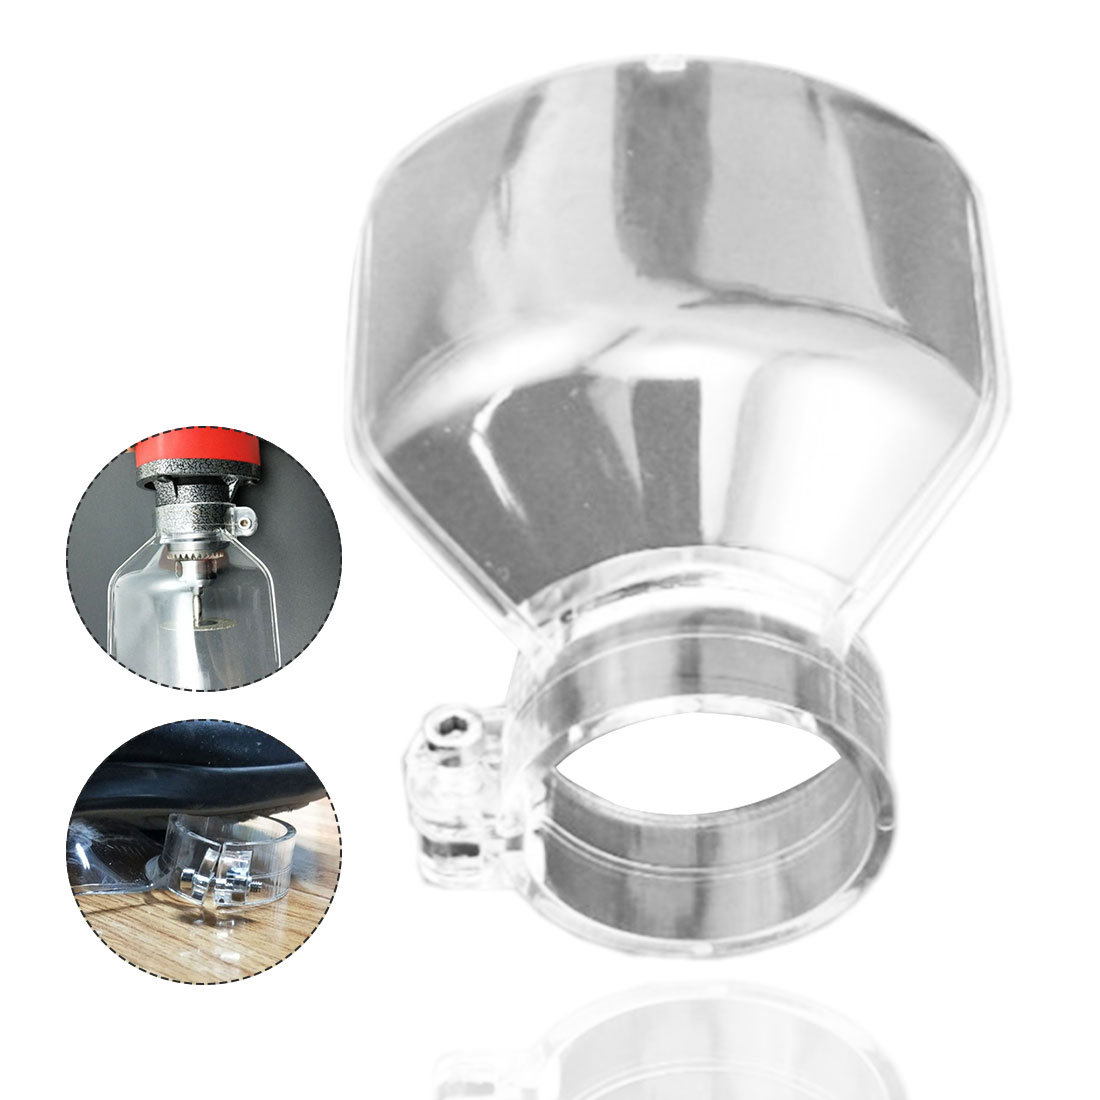 Power Tools Accessories Electric Grinding Transparent Safety Protecting Cover For Dremel Accessories Shield Mini Drill Holder